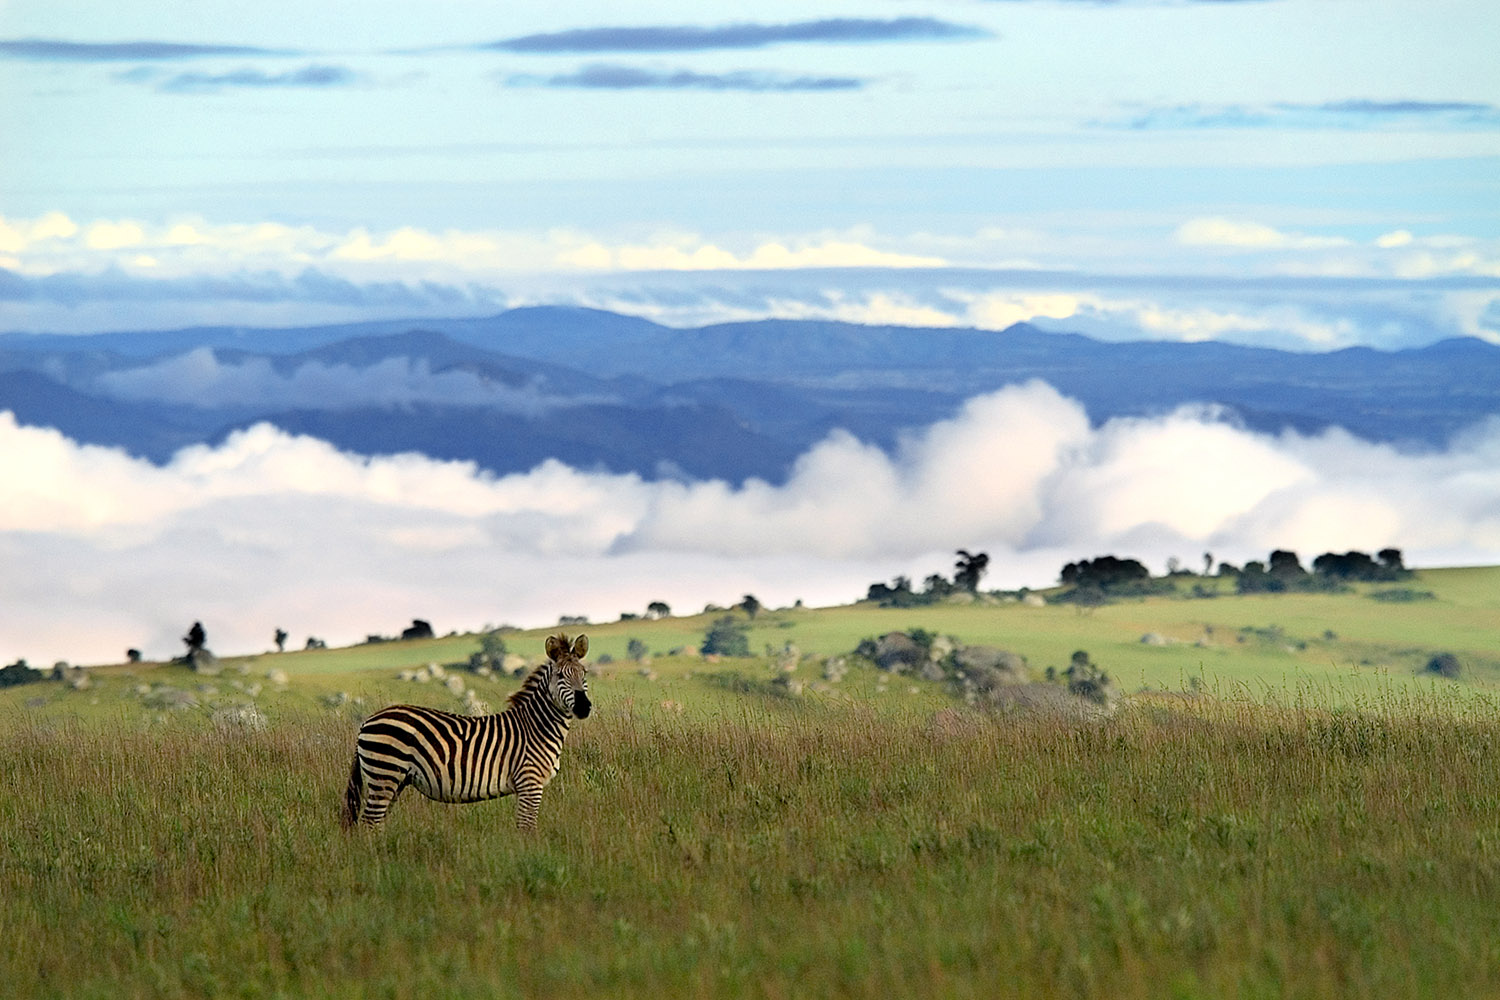 northern-adventurer-11-nights-active-holidays-tours-malawian-style-malawi-adventures-experiences-specialist-tour-operator-hiking-trail-nyika-national-park-zebra